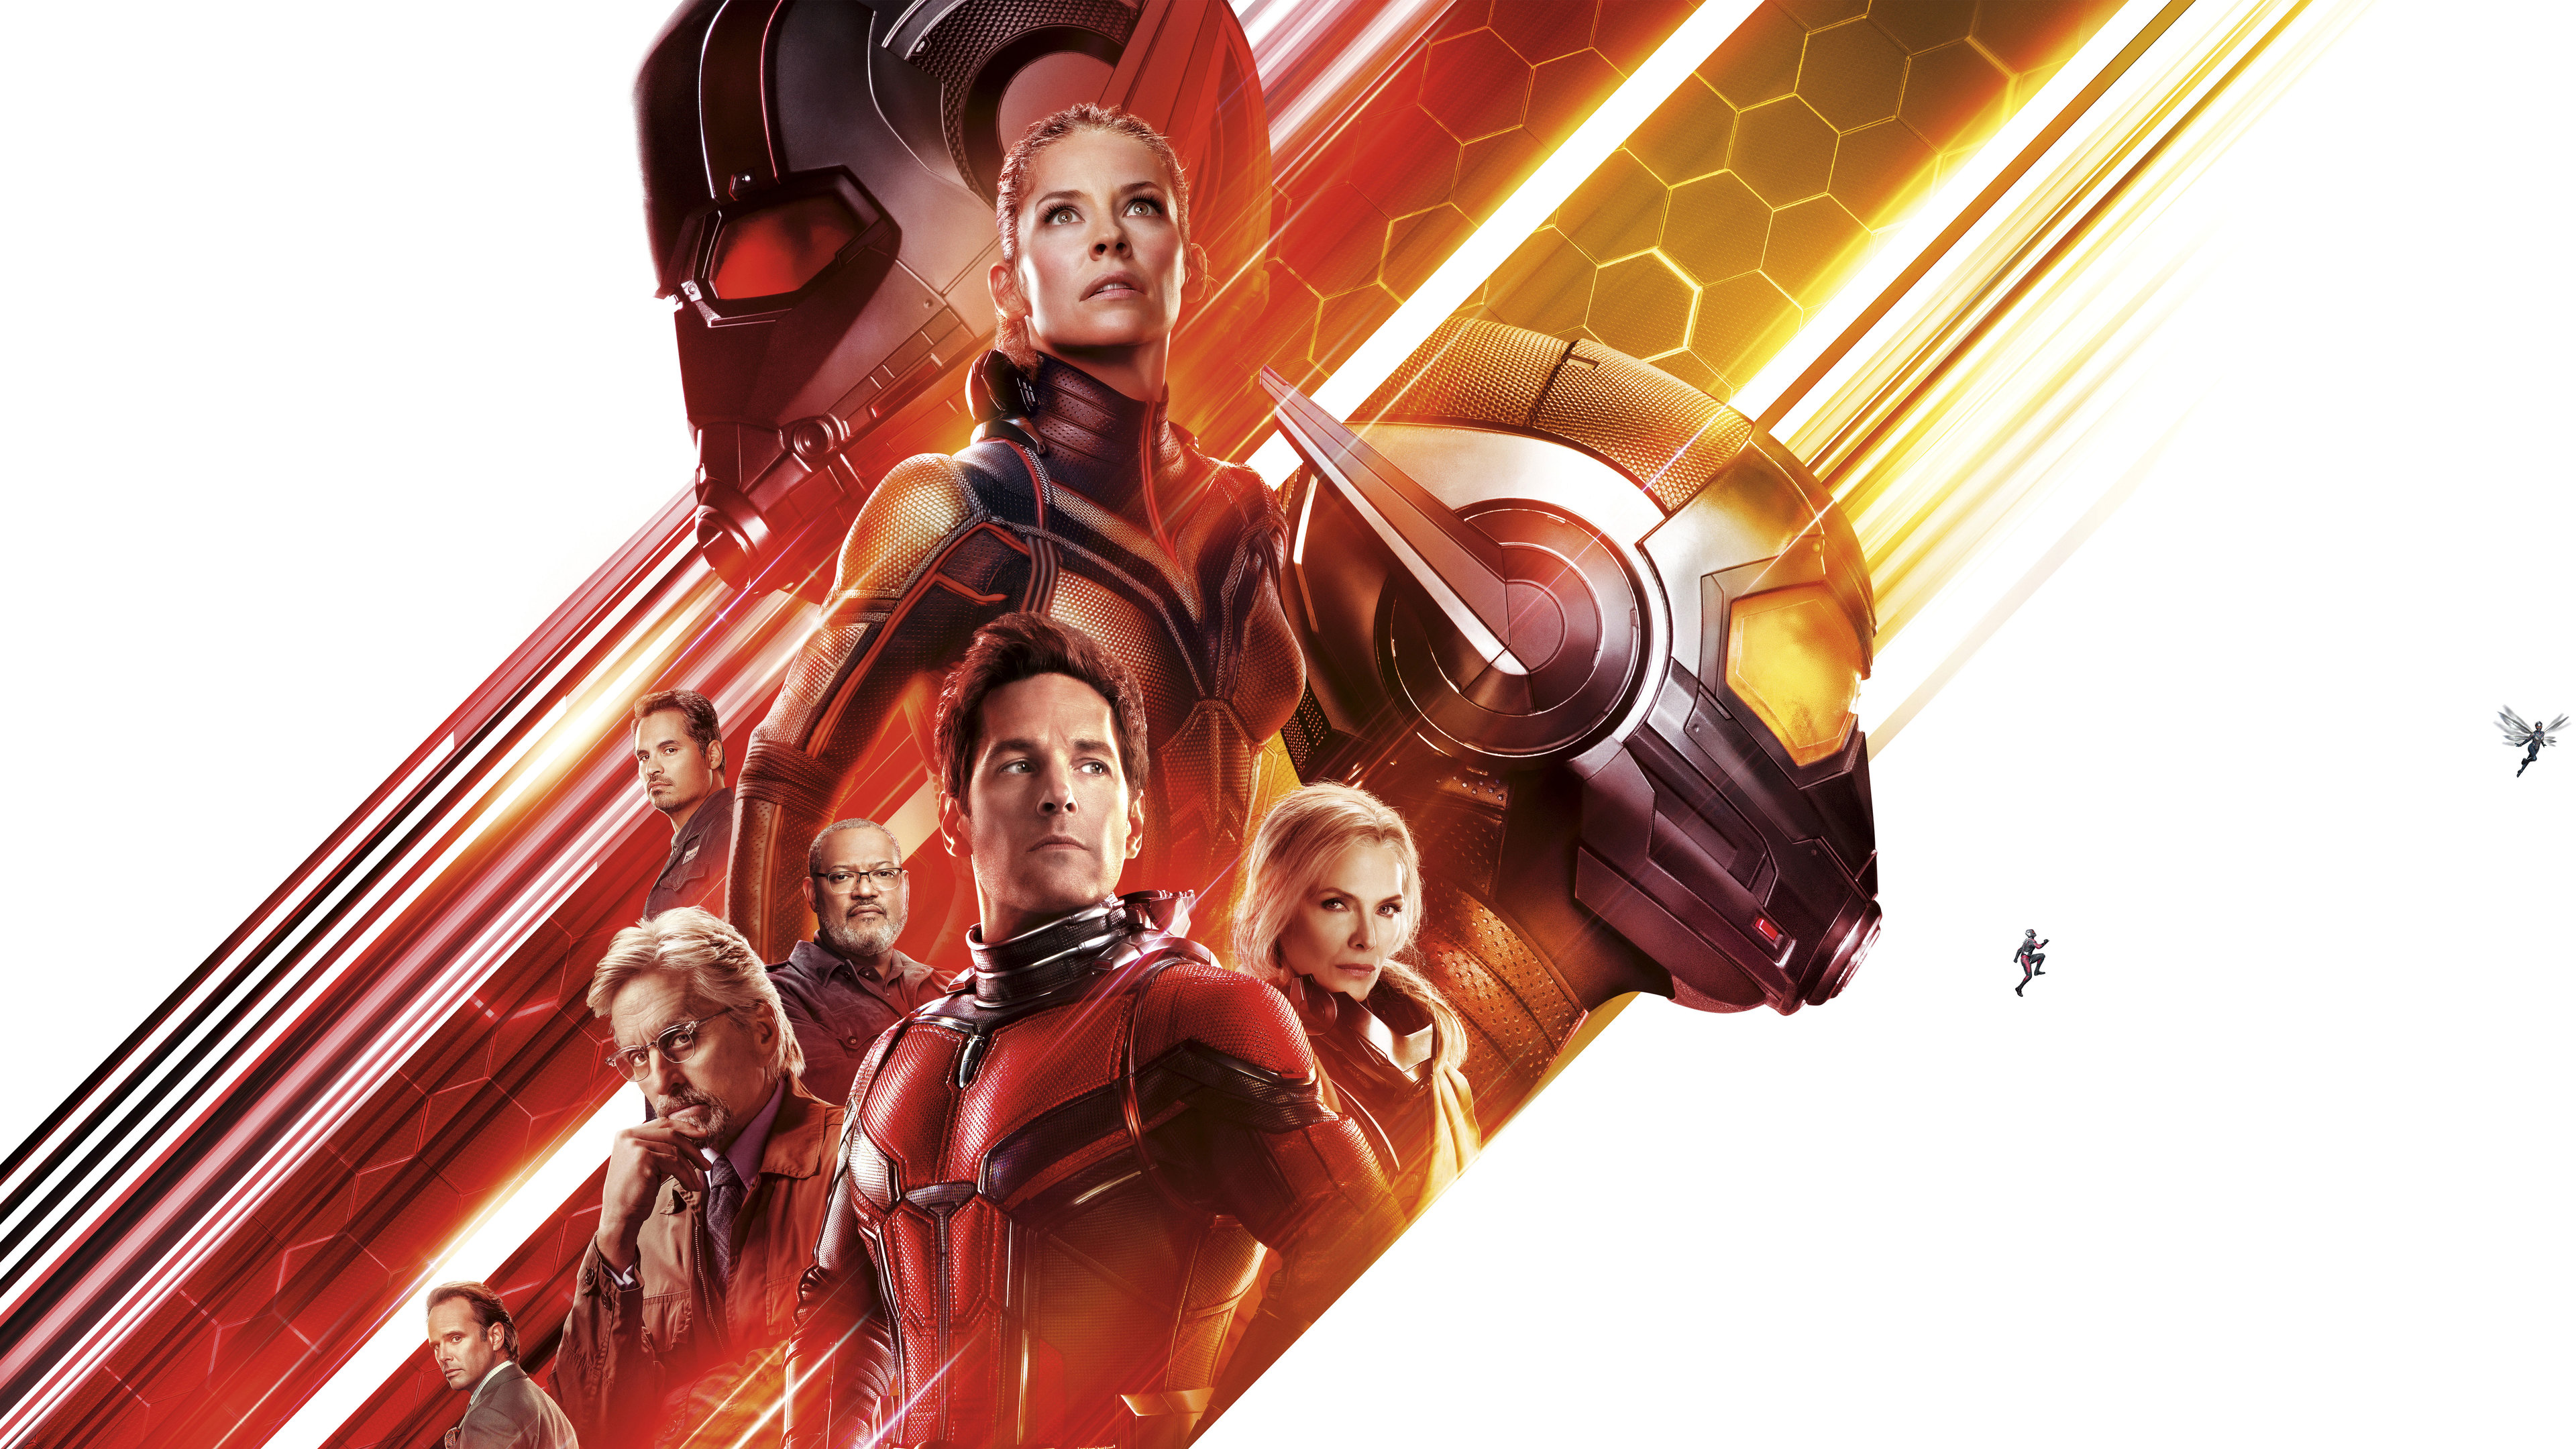 ant man and the wasp movie 10k 1537645404 - Ant Man And The Wasp Movie 10k - movies wallpapers, hd-wallpapers, ant man wallpapers, ant man and the wasp wallpapers, 8k wallpapers, 5k wallpapers, 4k-wallpapers, 2018-movies-wallpapers, 10k wallpapers